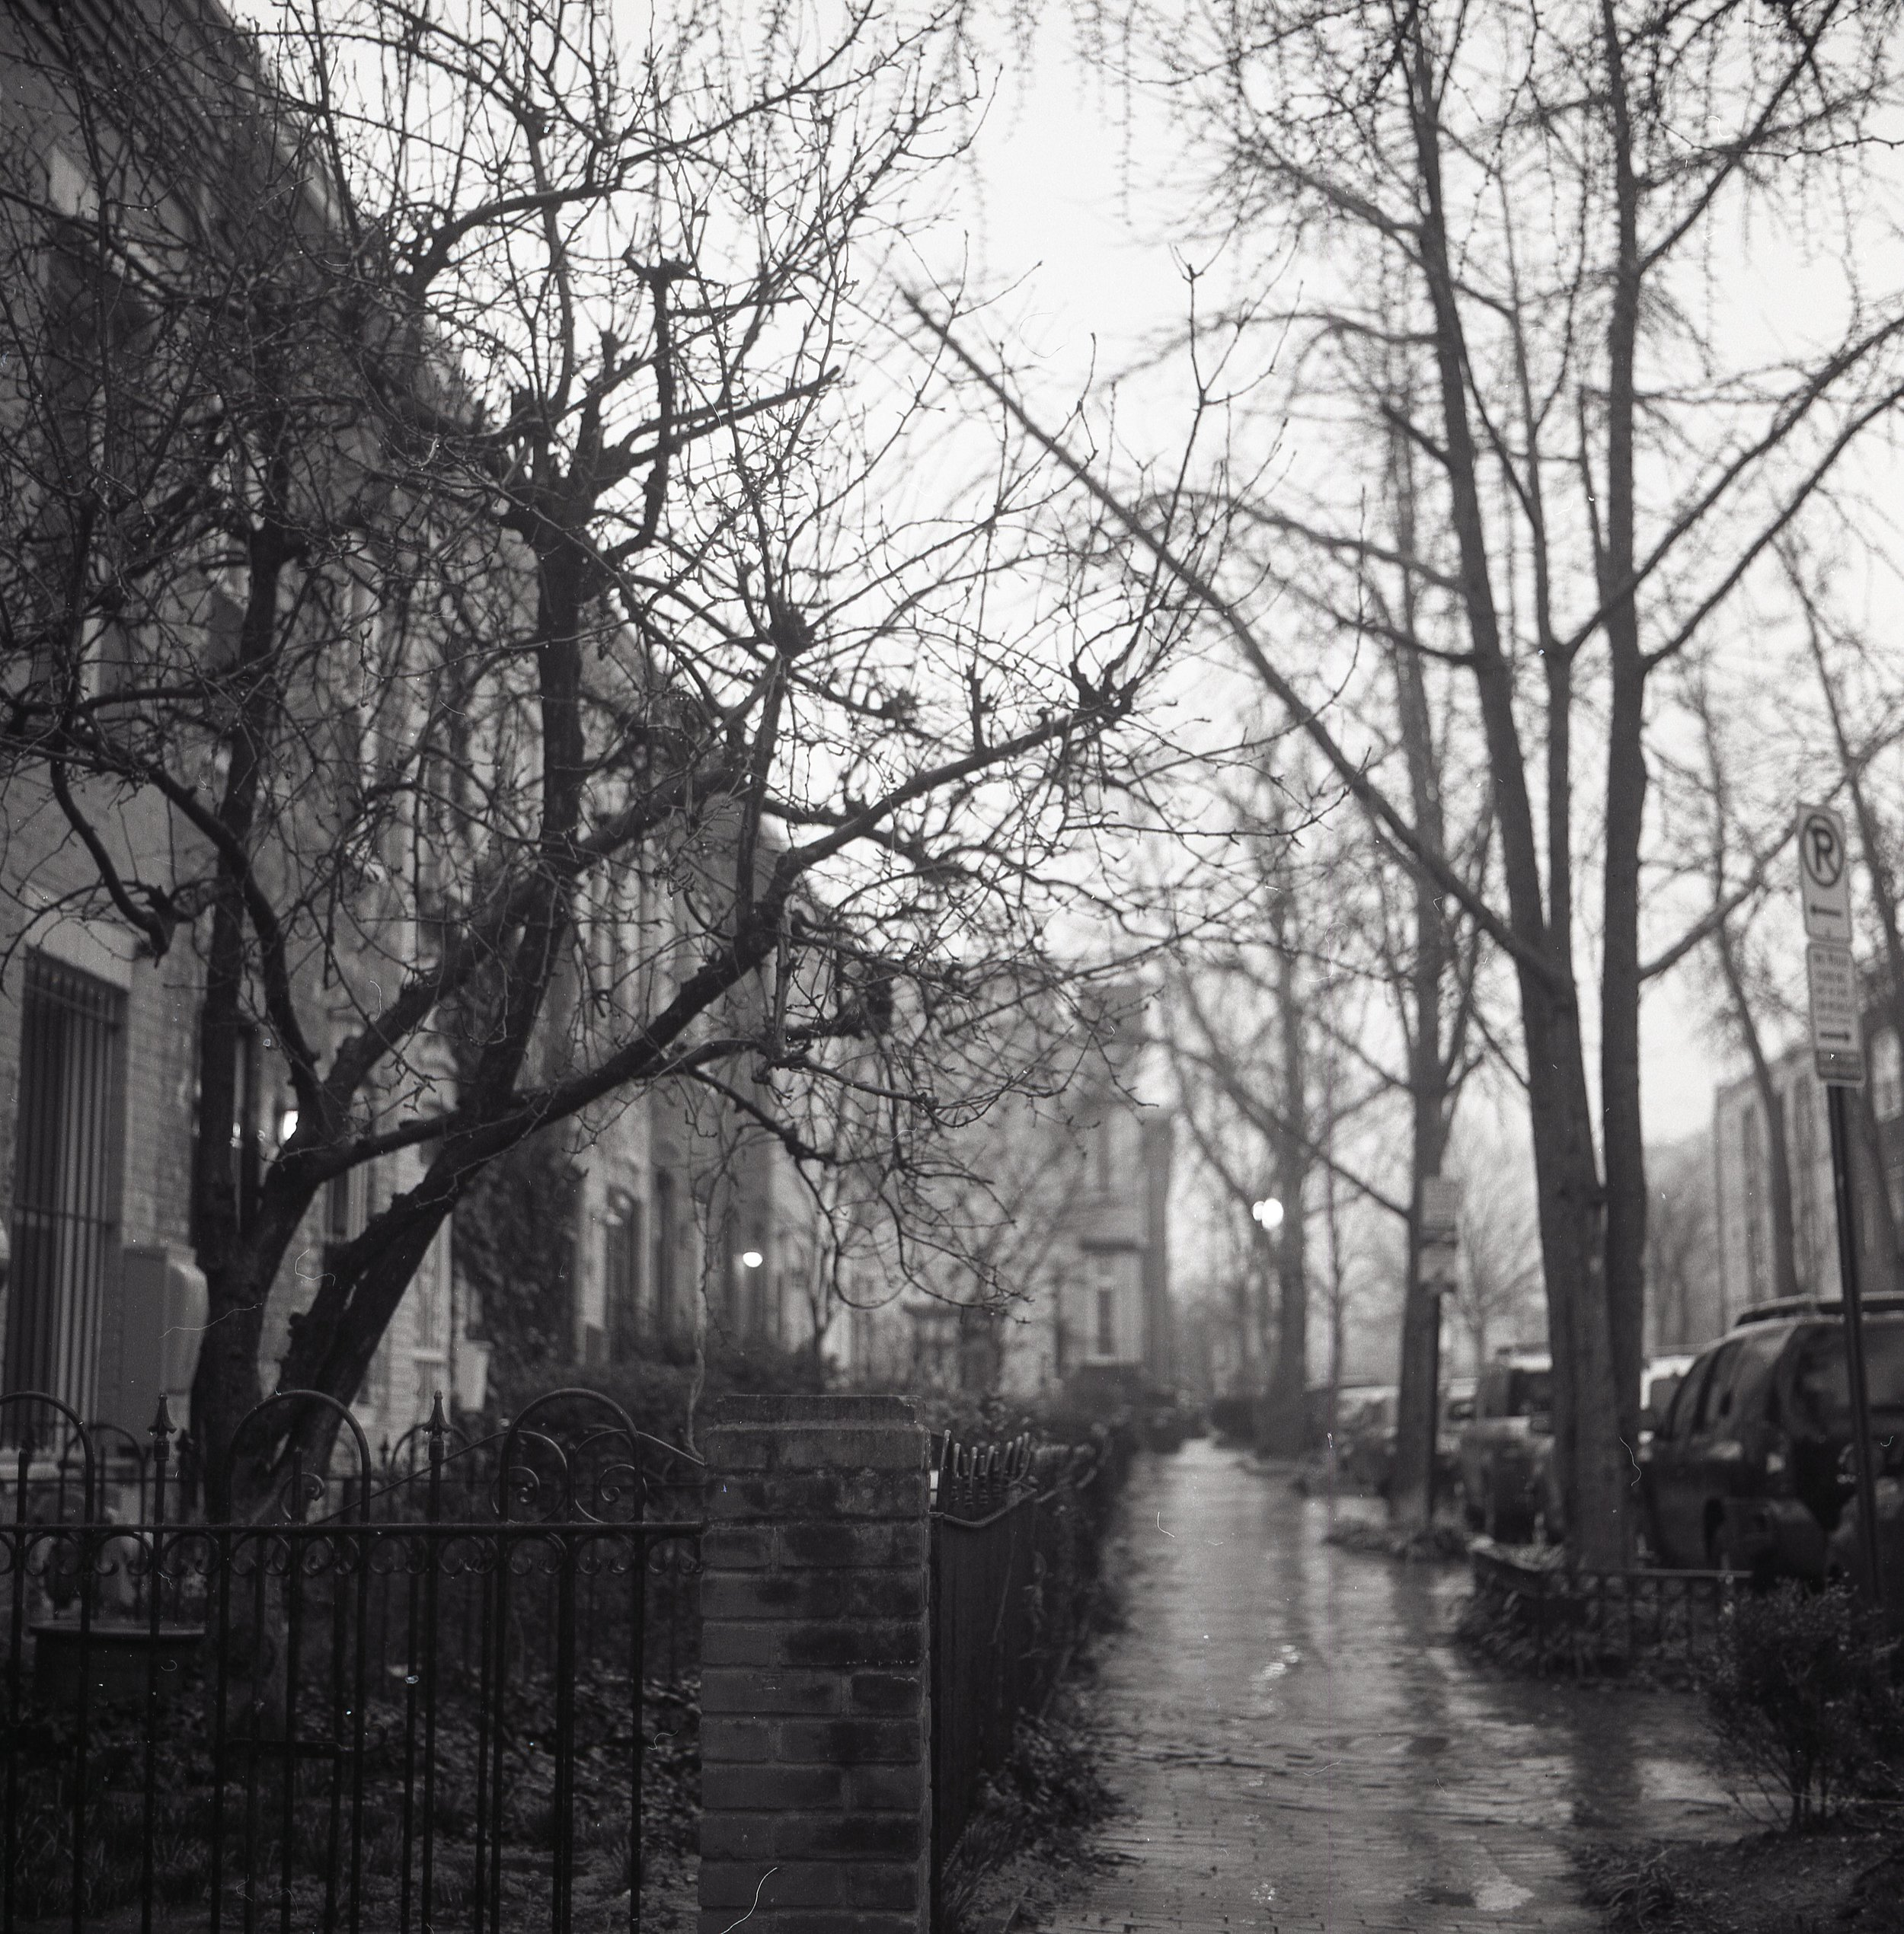 Rainy day in Shaw